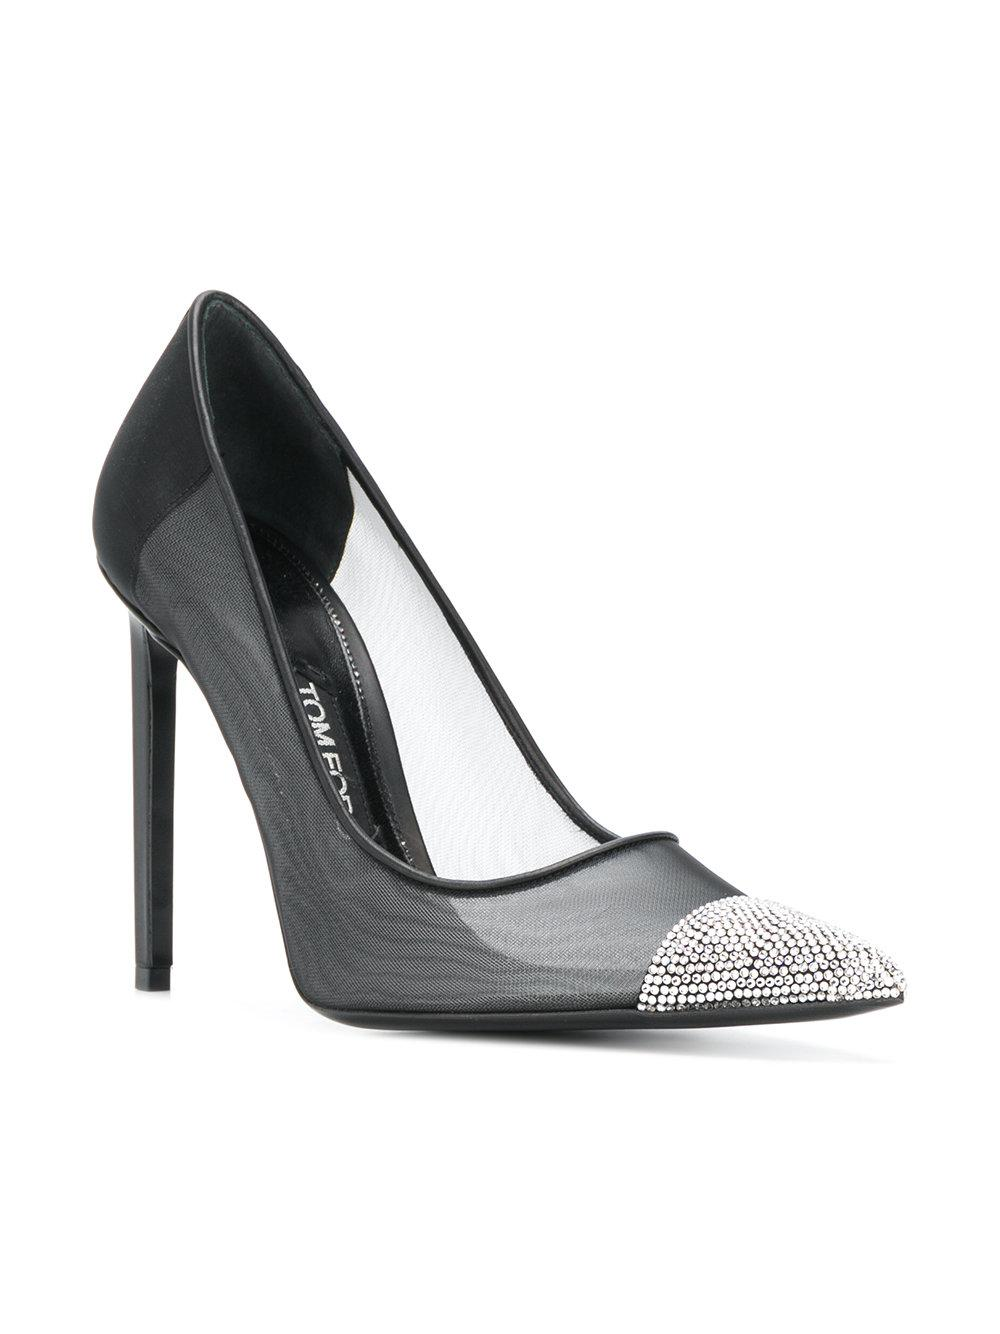 b9fedf17b0ac Tom Ford Crystal Embellished Pumps in Black - Lyst